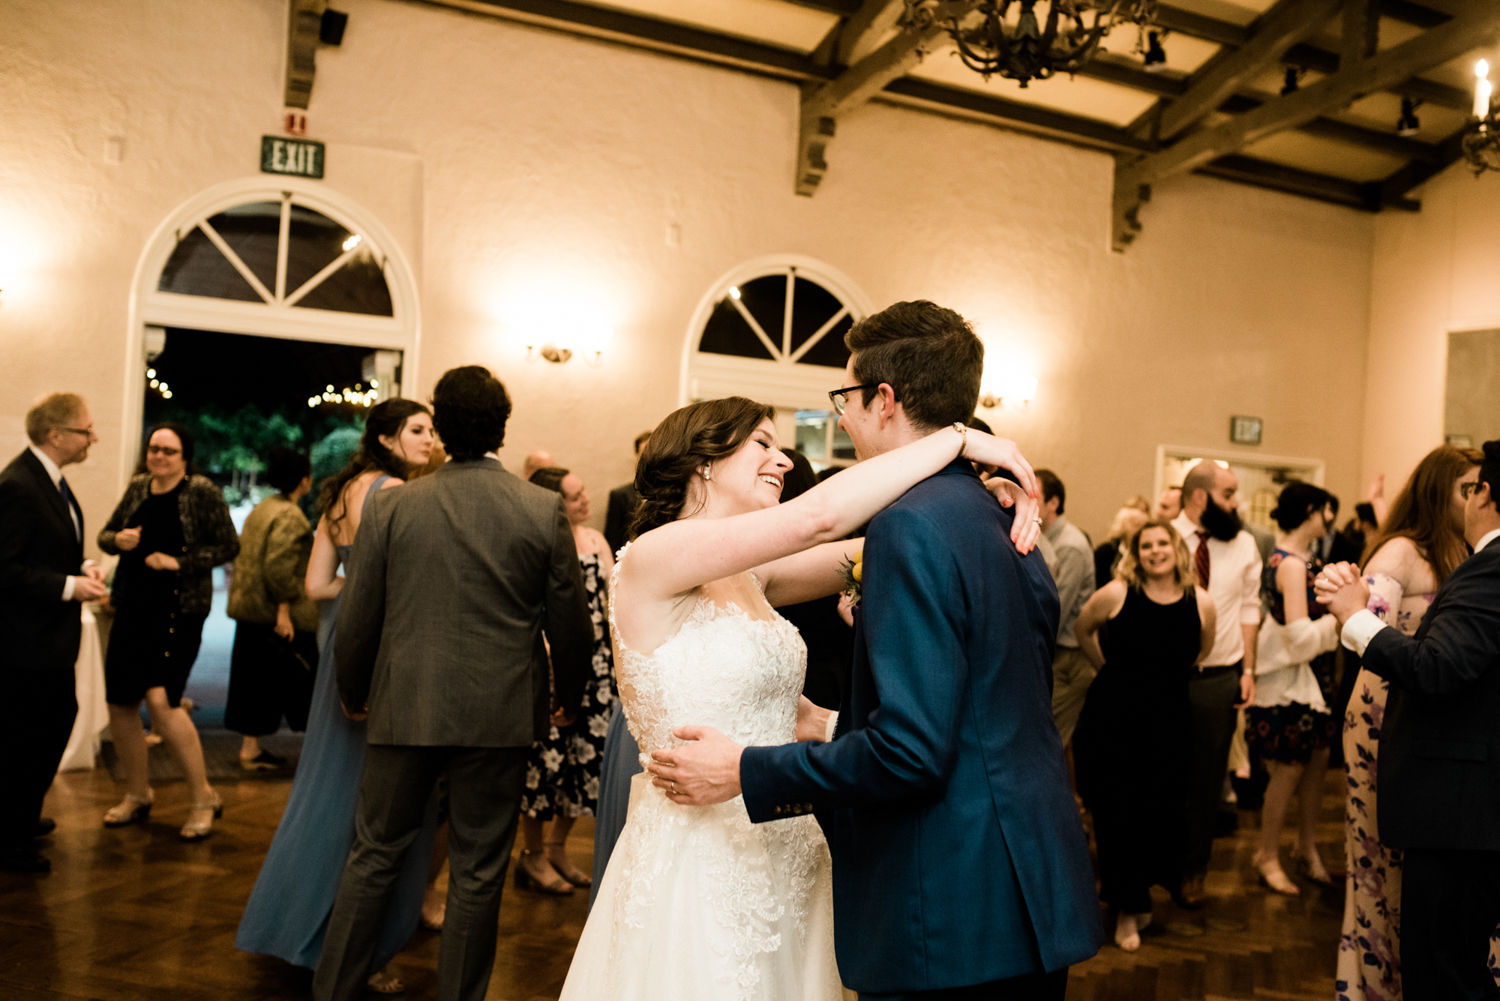 Spring_Piedmont_Community_Hall_Wedding_058.jpg